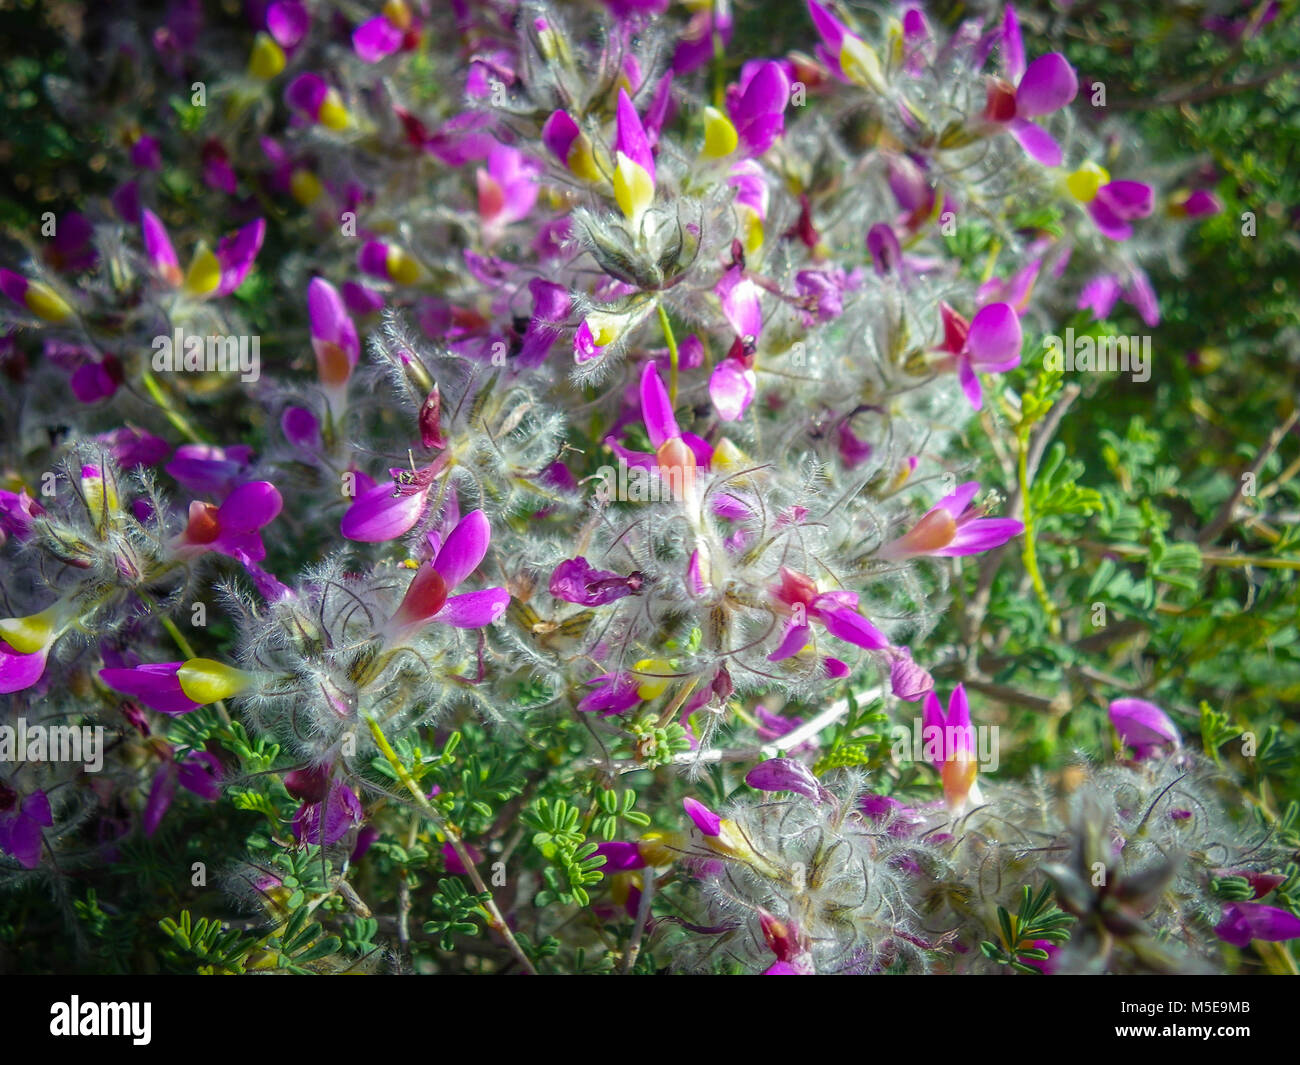 Small purple flowers growing on stock photos small purple flowers small purple flowers with yellow center and fluff on them stock image mightylinksfo